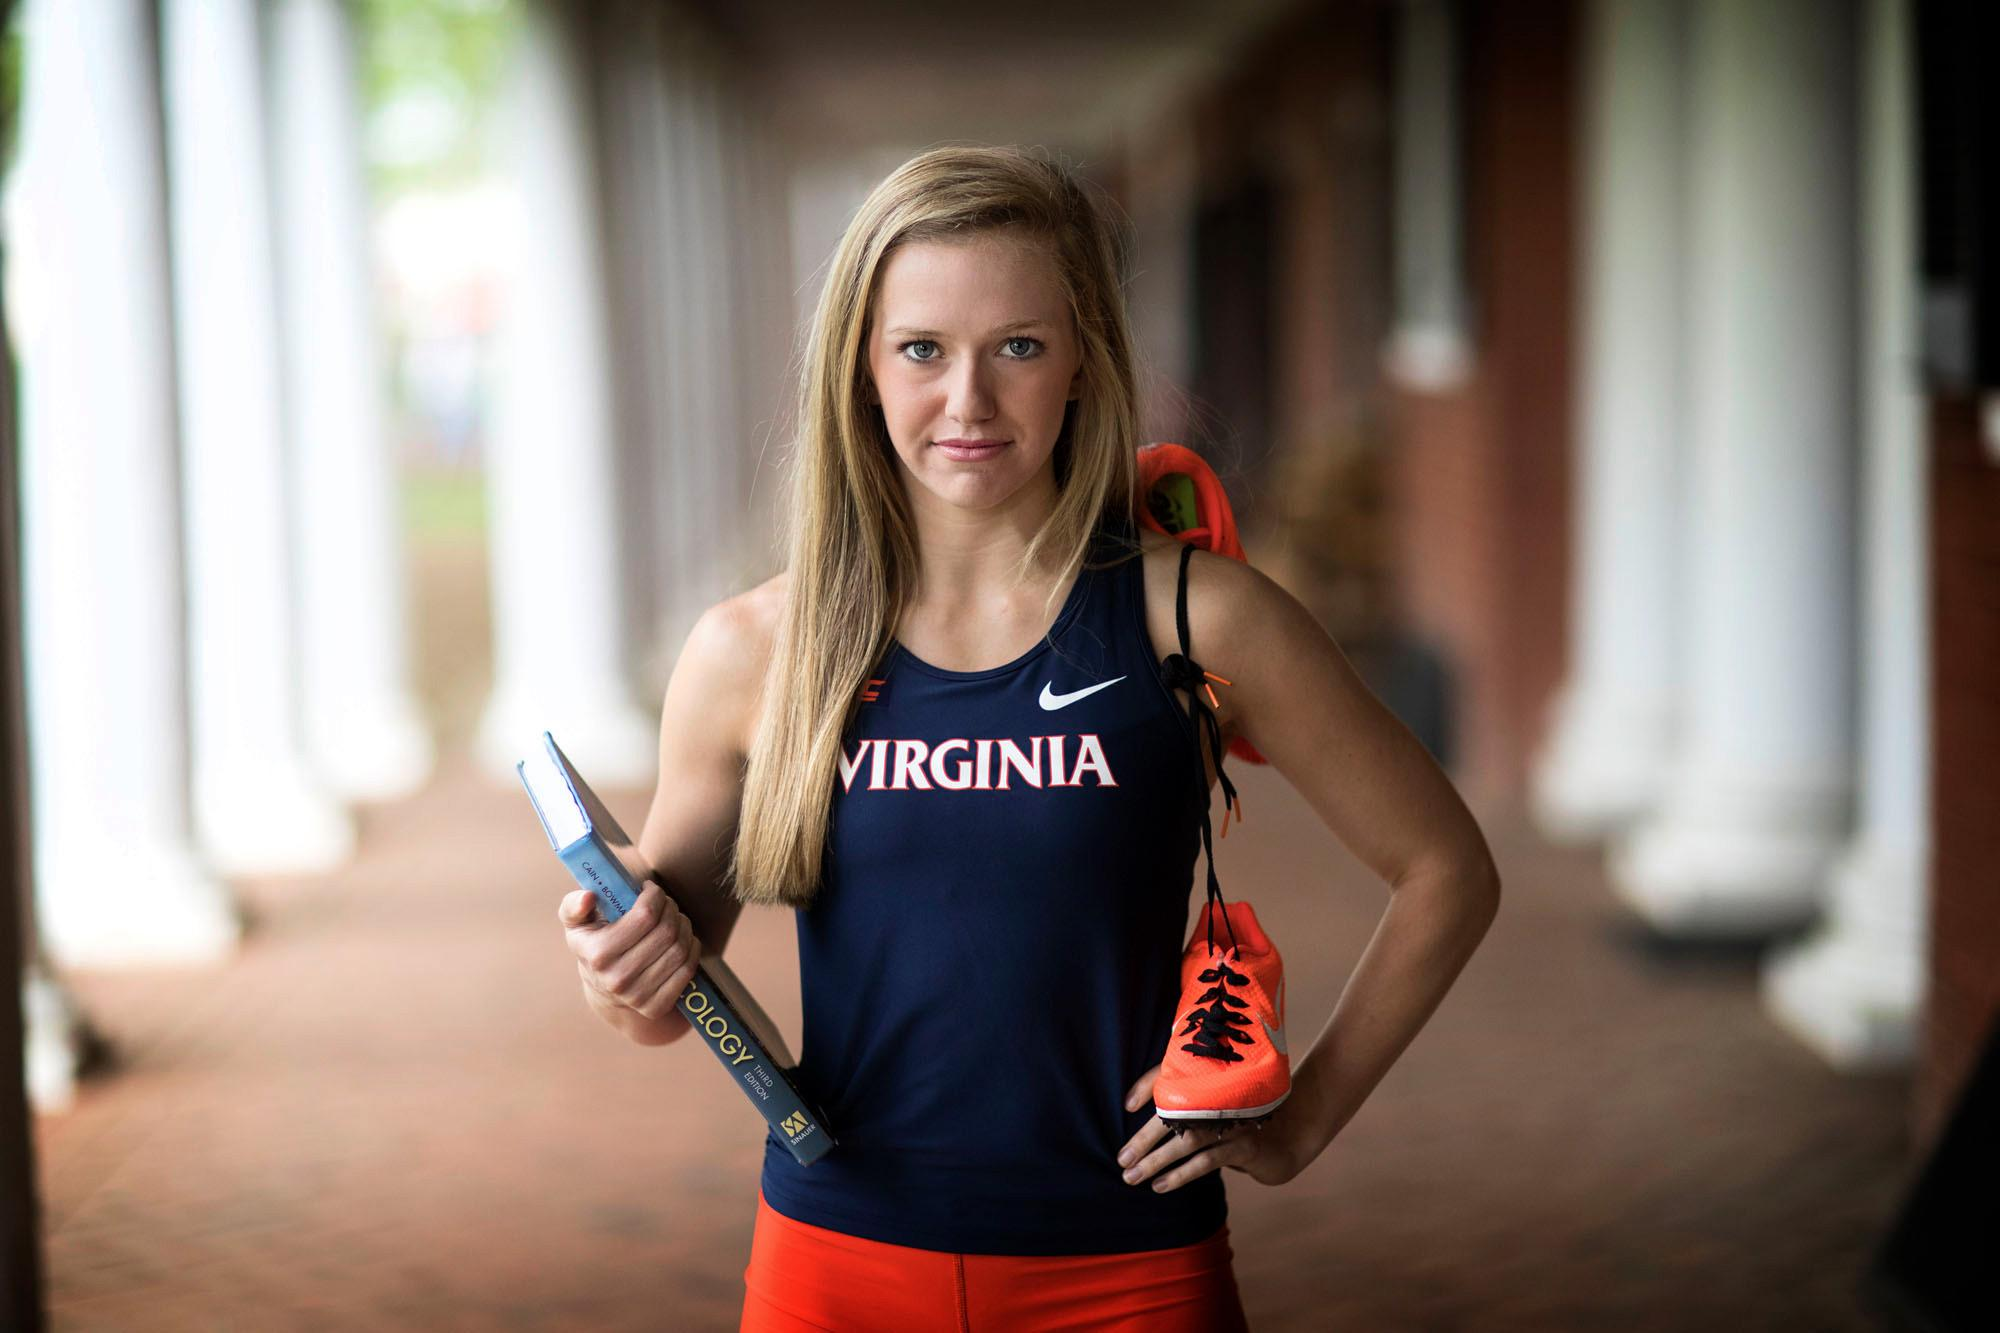 Biology major Micah Brickhill will attend UVA's School of Medicine this fall.